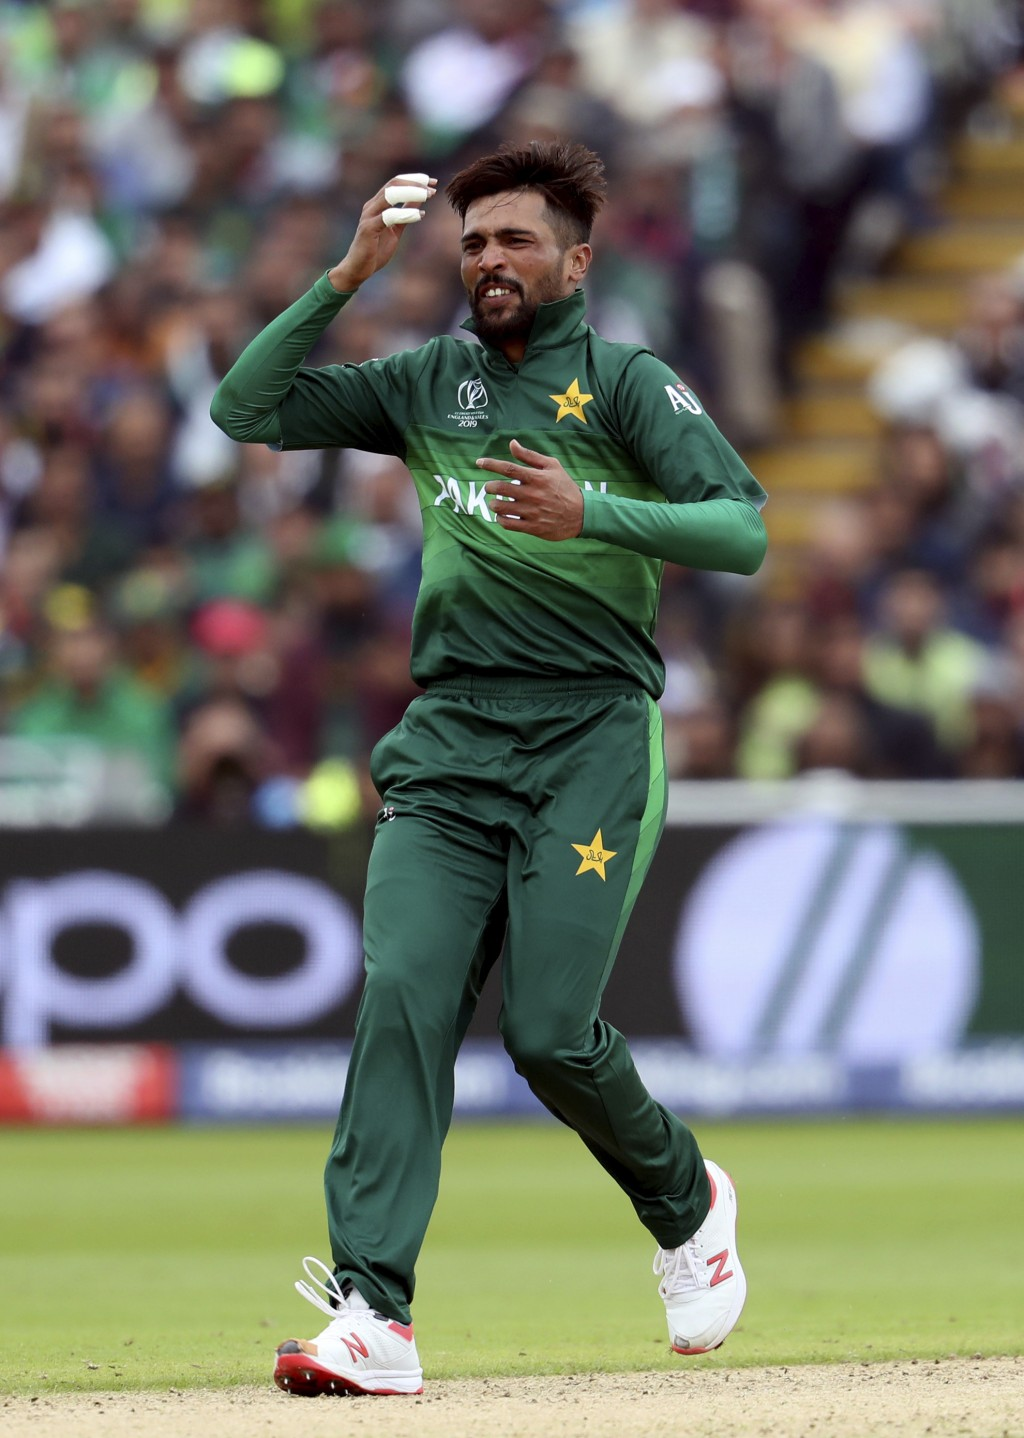 Pakistan's bowler Mohammad Amir reacts after his delivery during the Cricket World Cup match between New Zealand and Pakistan at the Edgbaston Stadium...